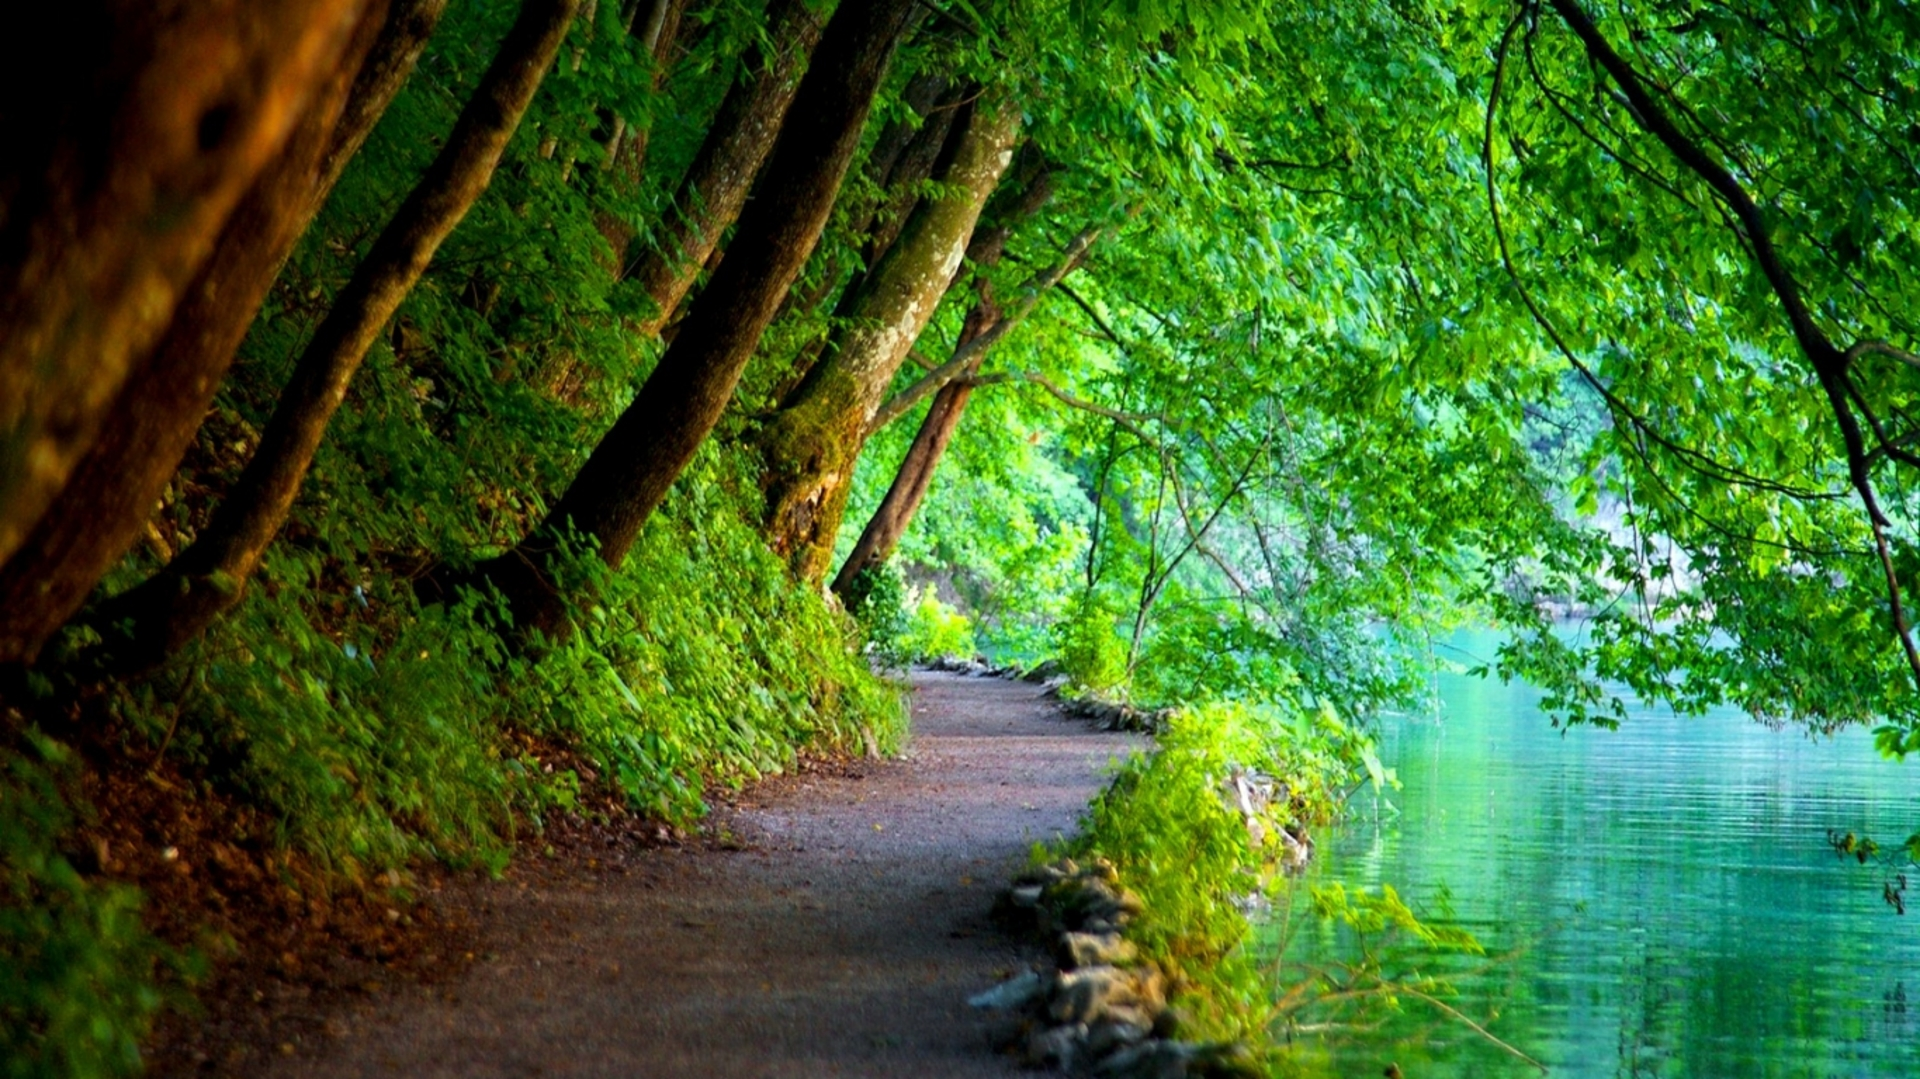 Hd wallpaper nature green - Hd Wallpaper Nature Green Nature Wallpapers Hd Landscape Pictures One Hd Wallpaper Pictures